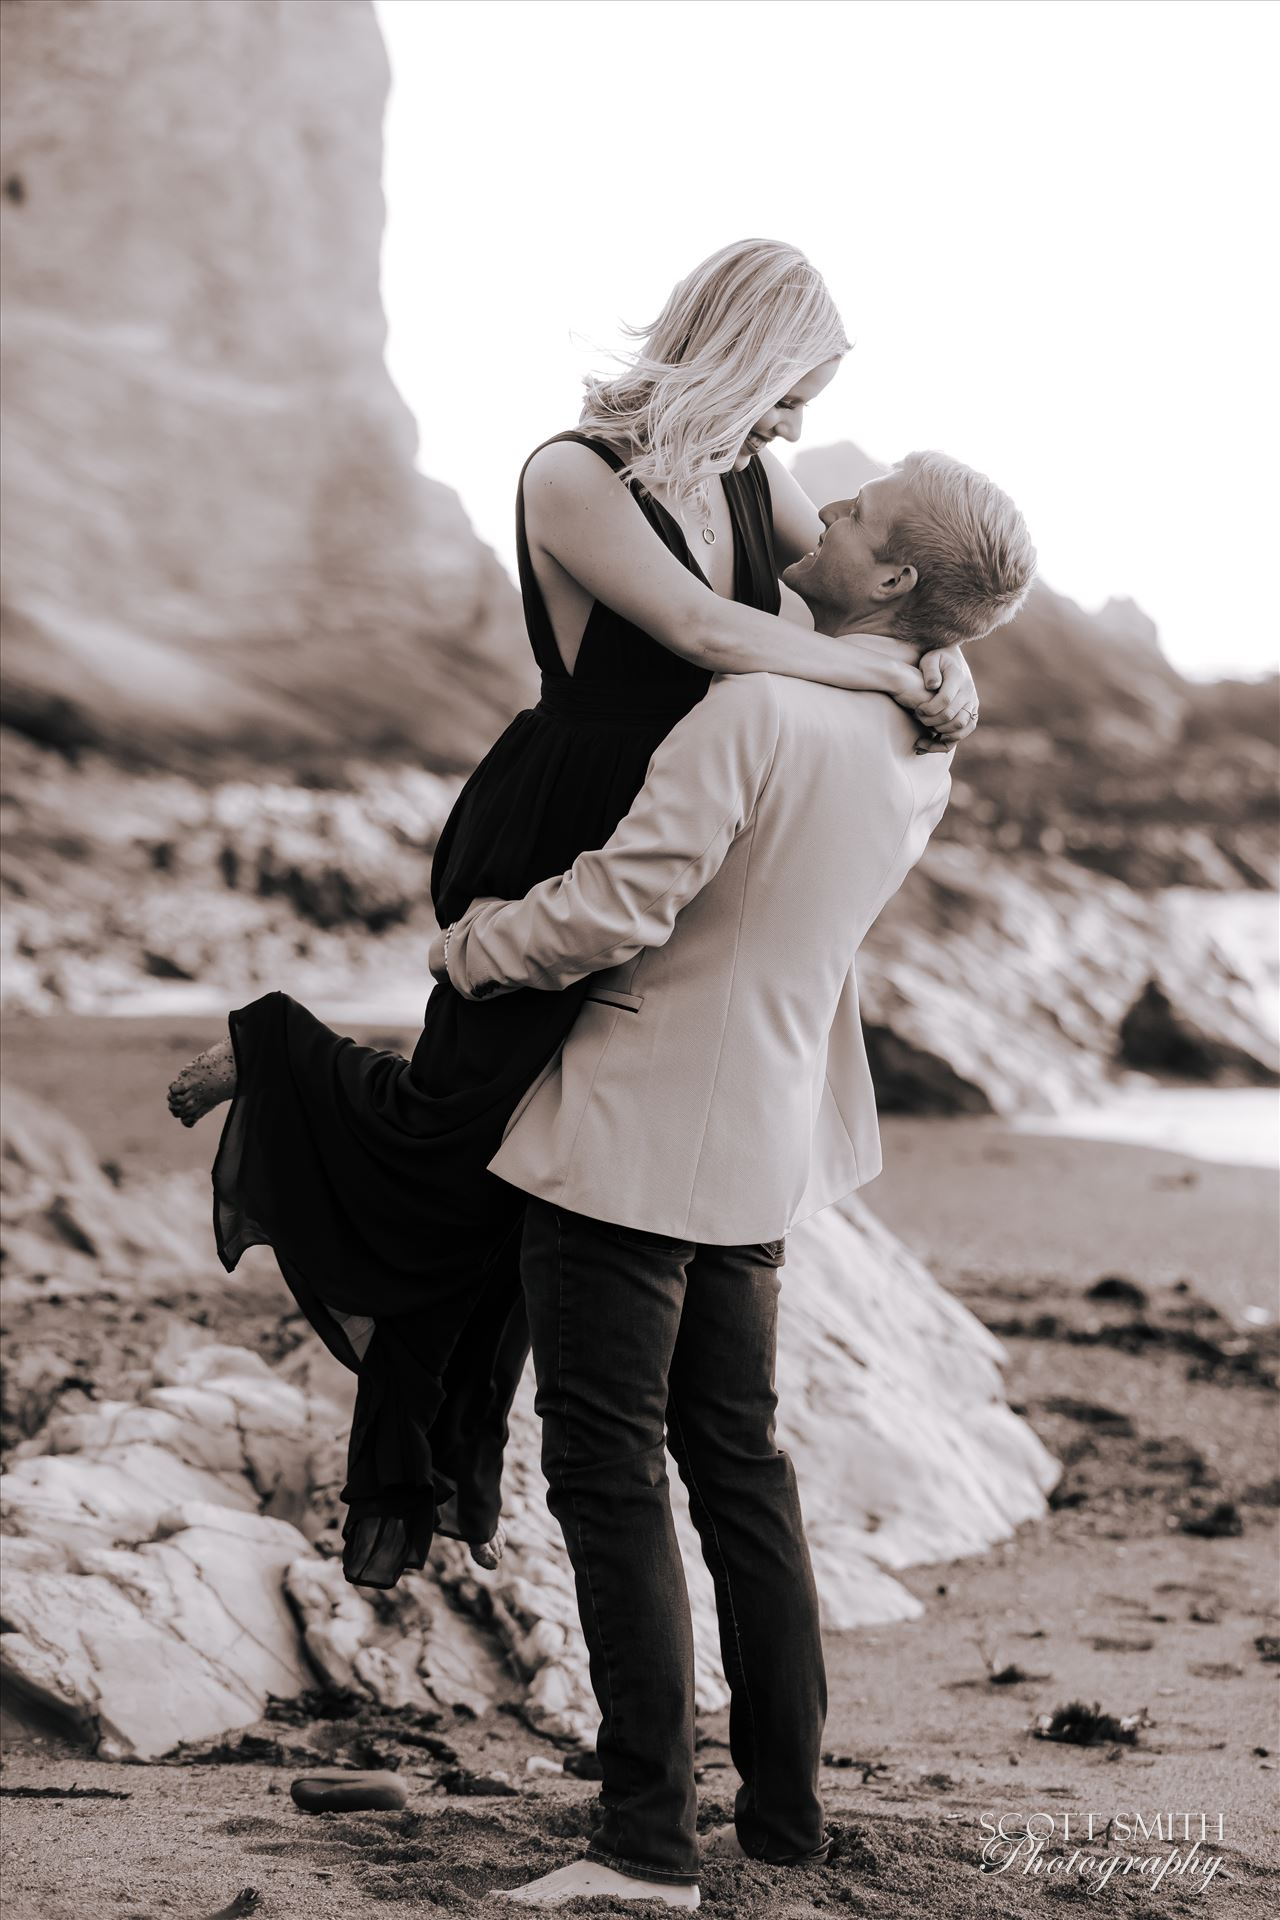 Joanna and Ryan 3 - Joanna and Ryan's engagement session at Spooner's Cover, California. by D Scott Smith